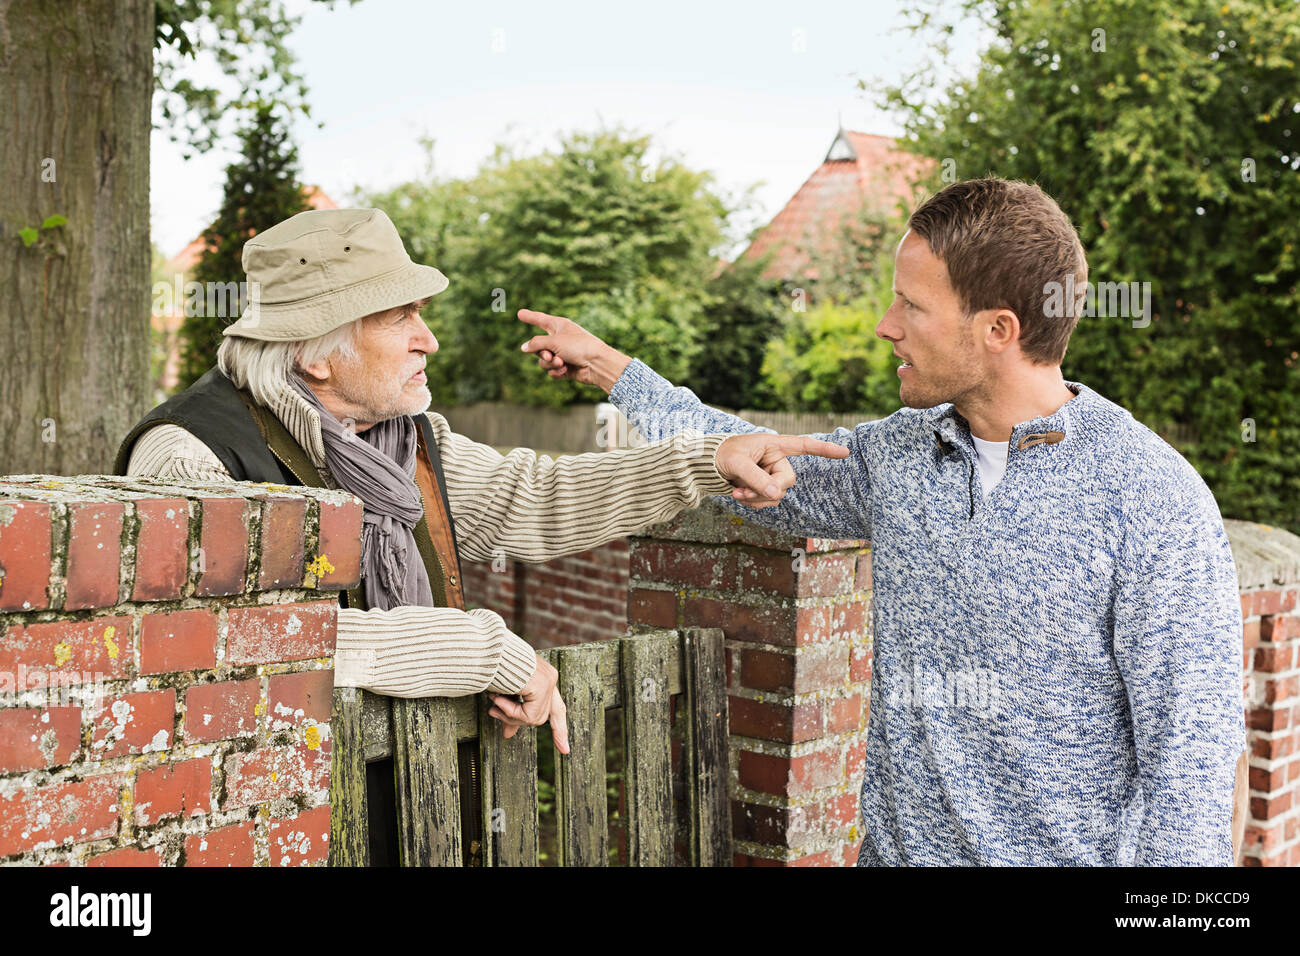 Senior man and mid adult man arguing - Stock Image